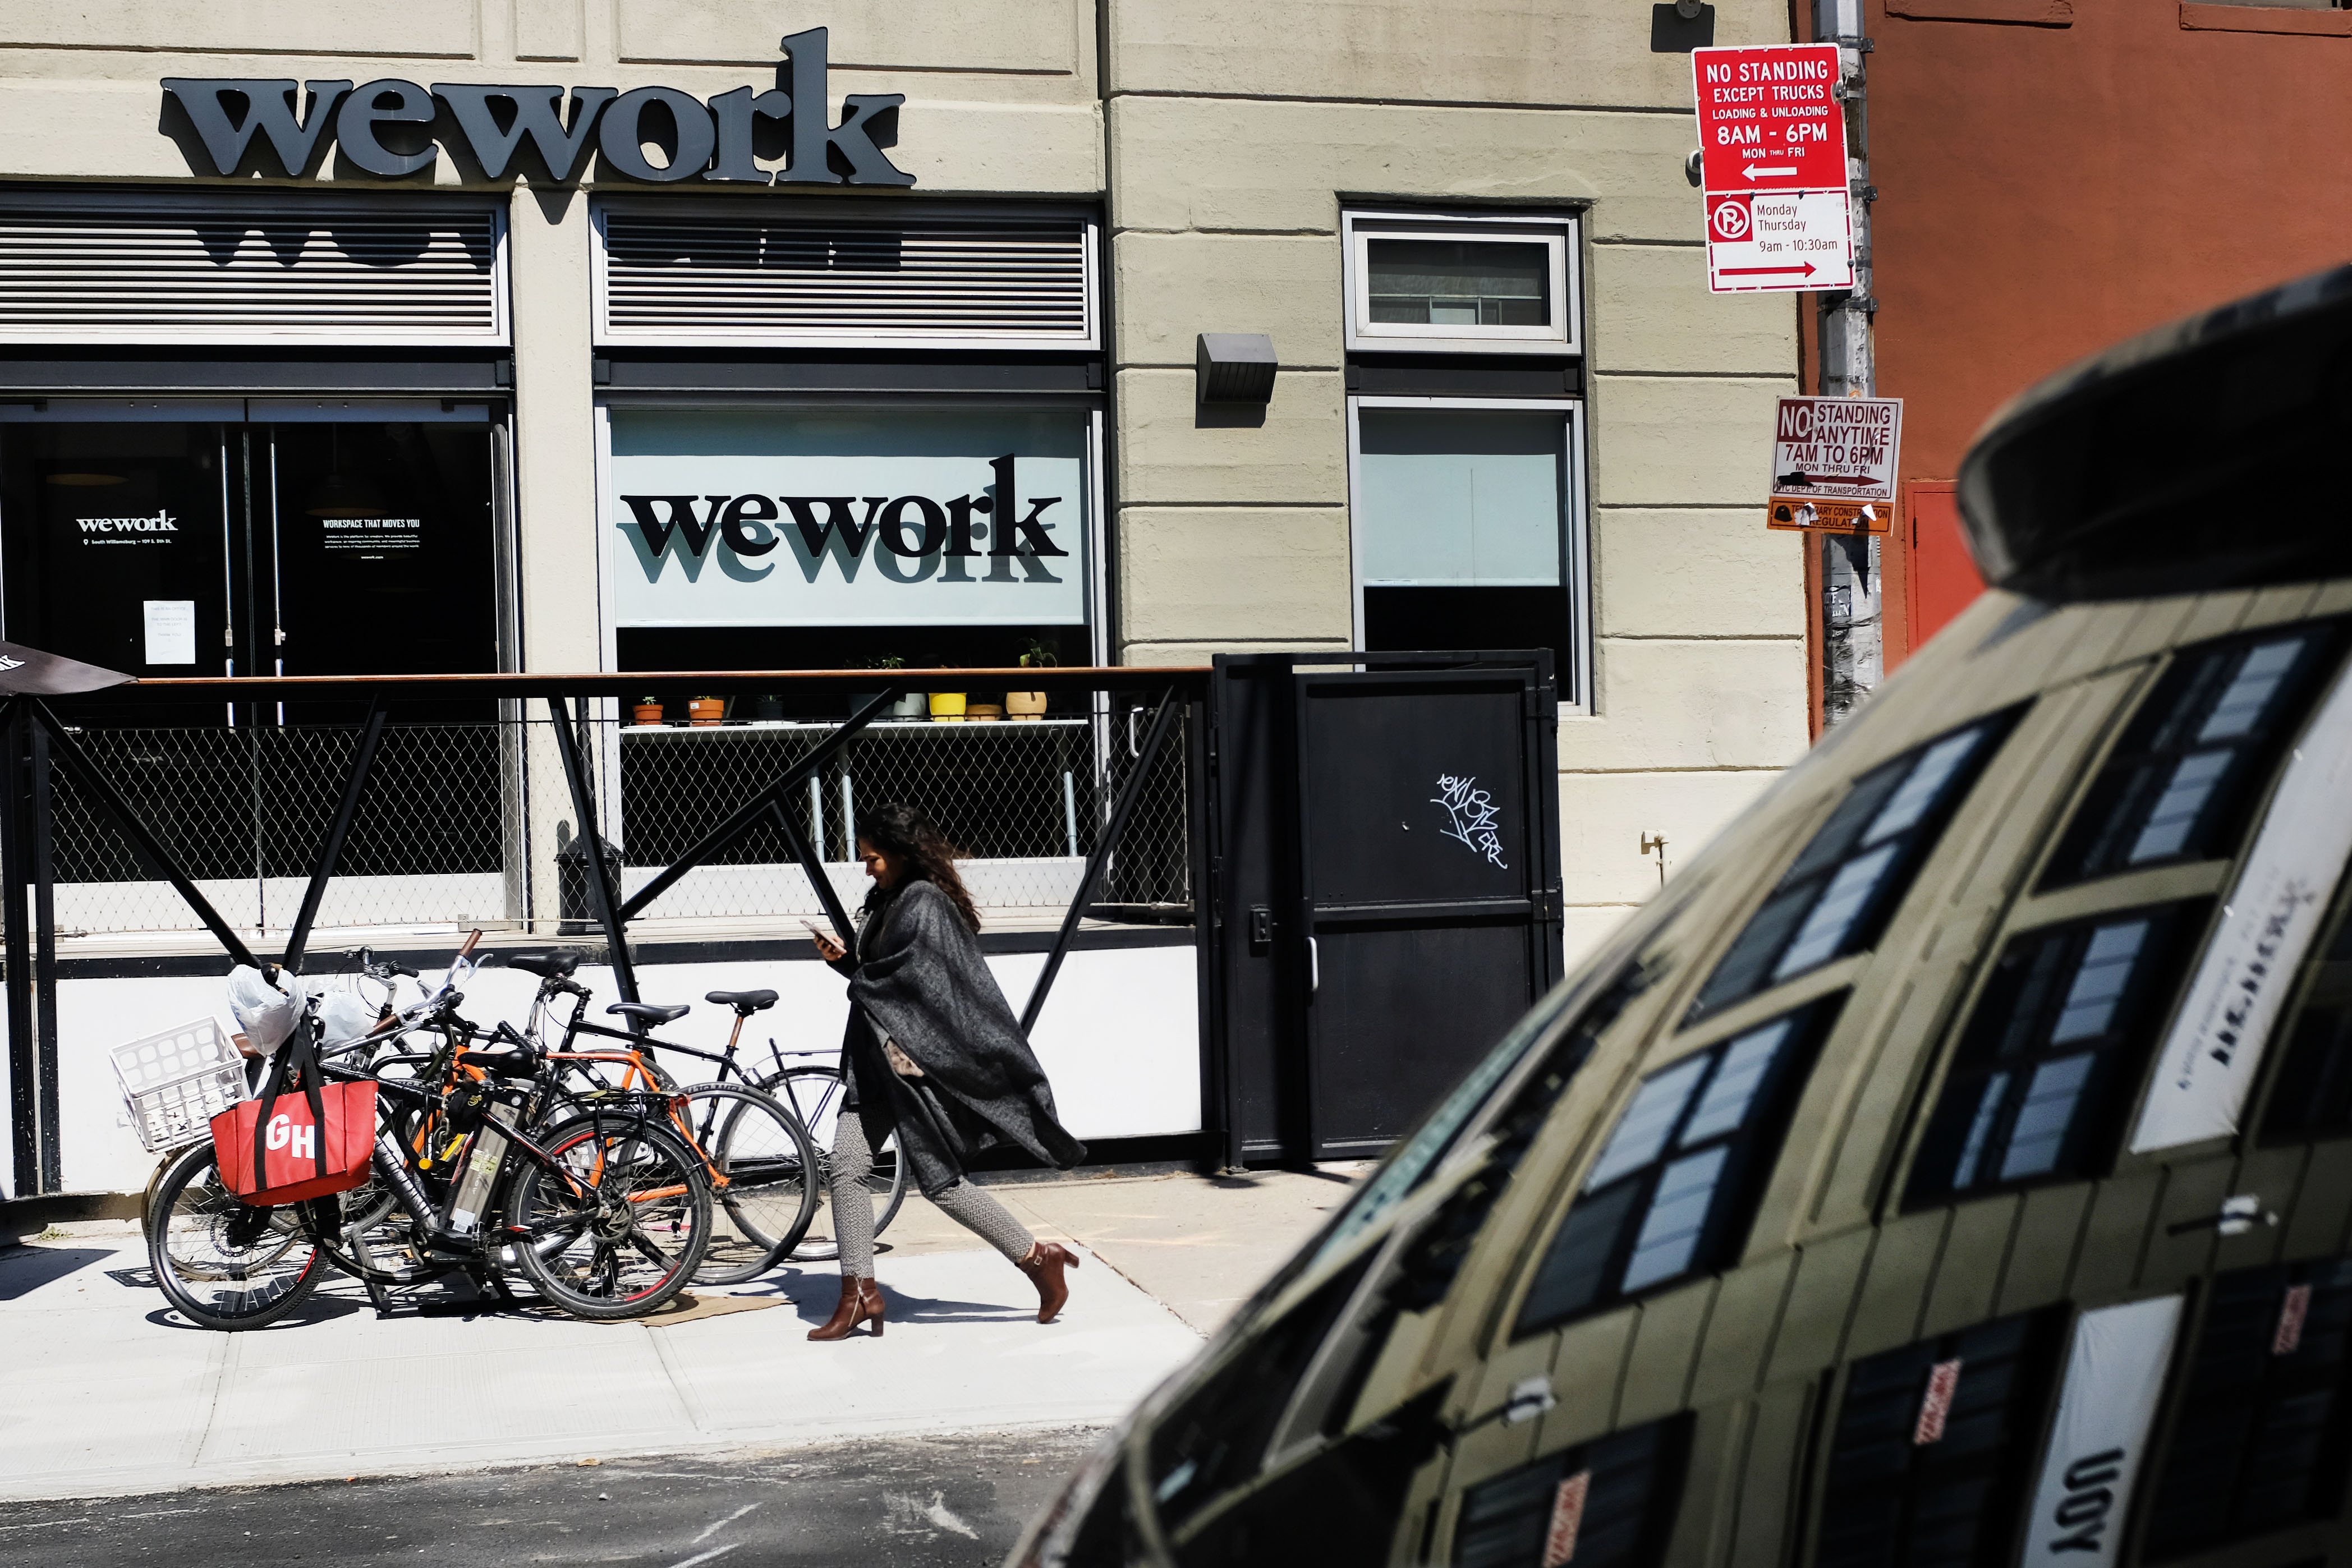 A person on the street walks past a WeWork office's front windows.